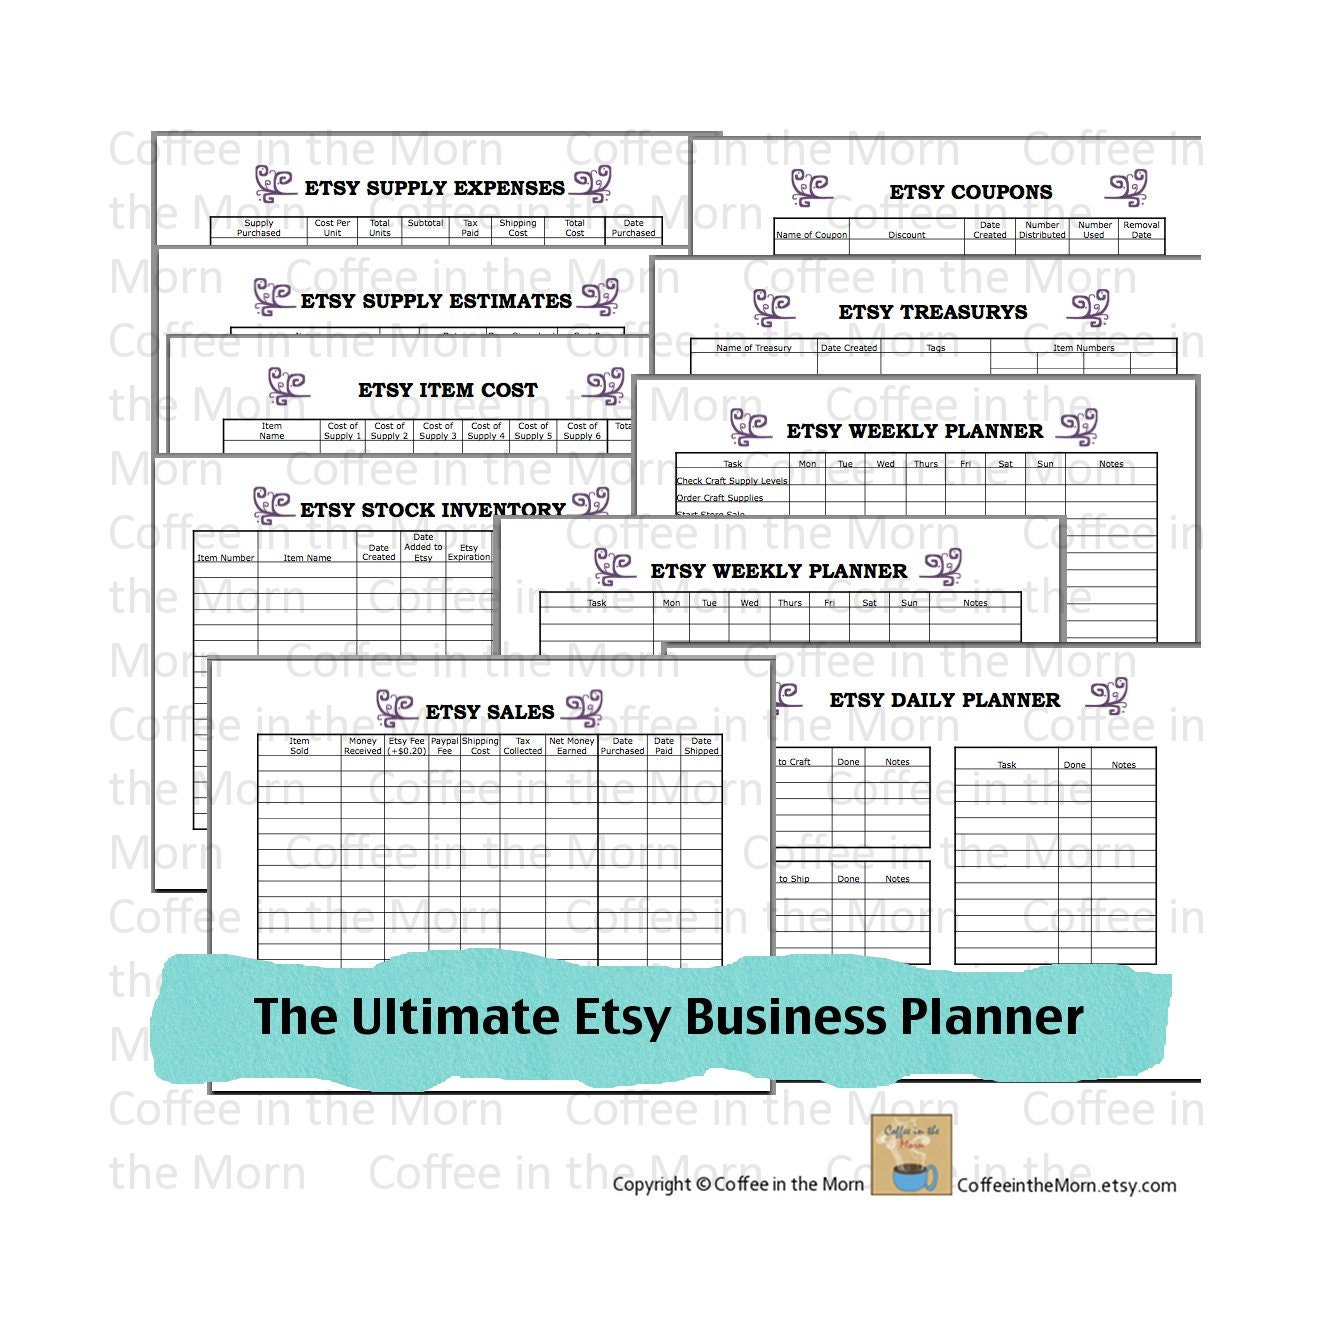 zoom bussiness planner